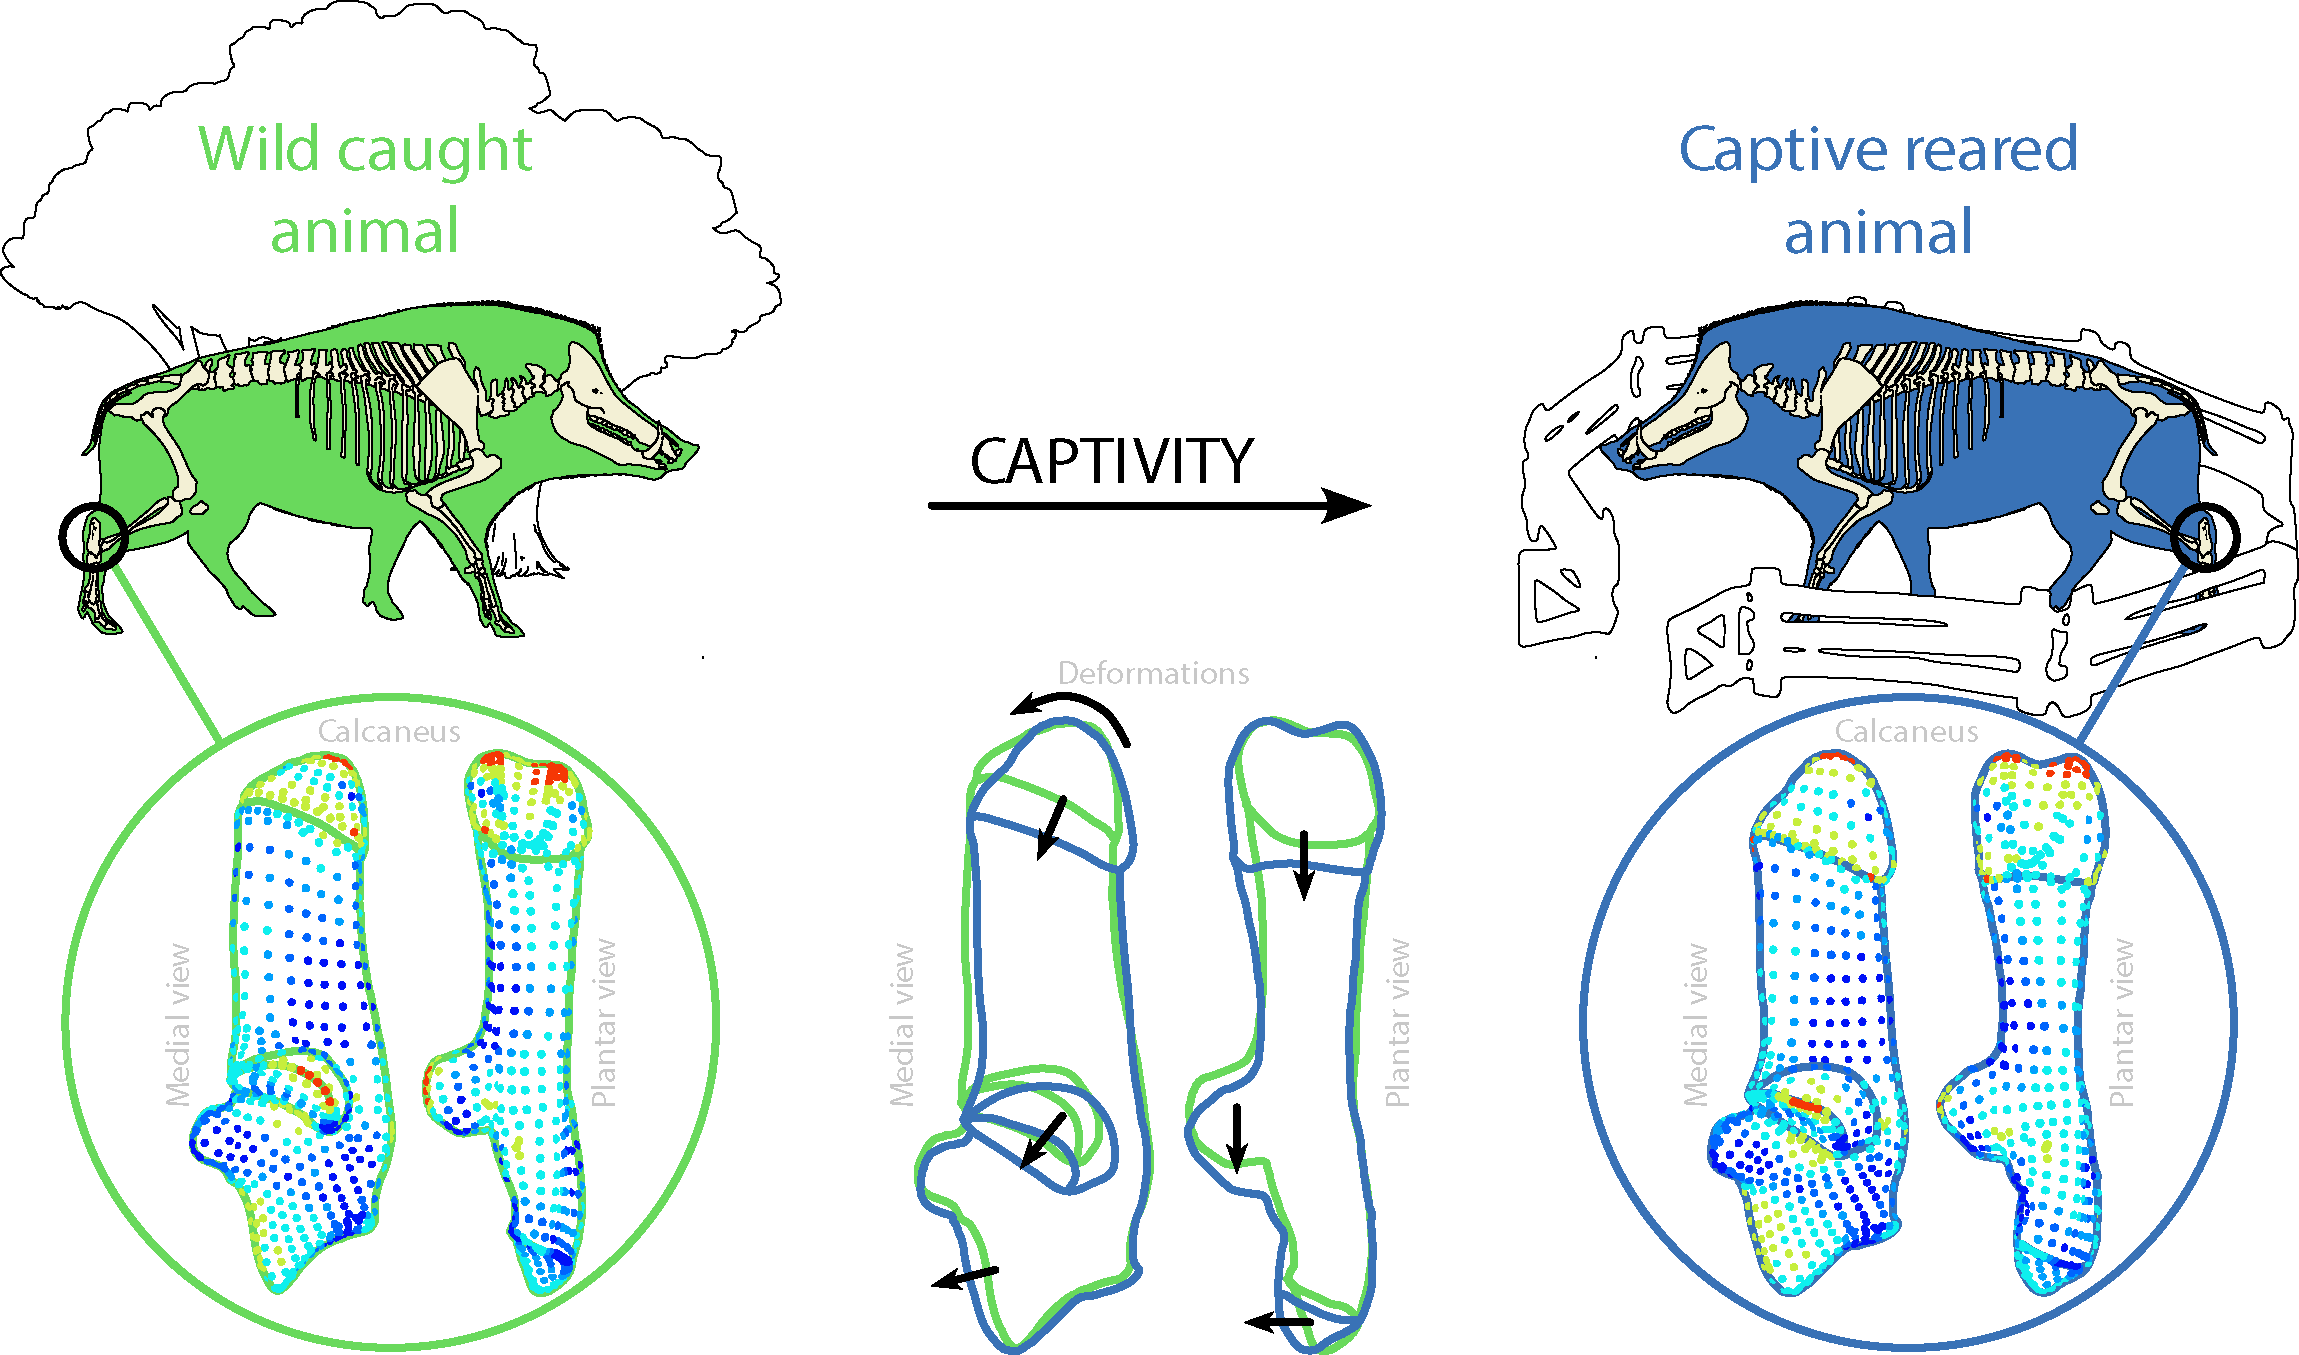 drawings and 3D shapes showing the changes in the calcaneus induced by captivity